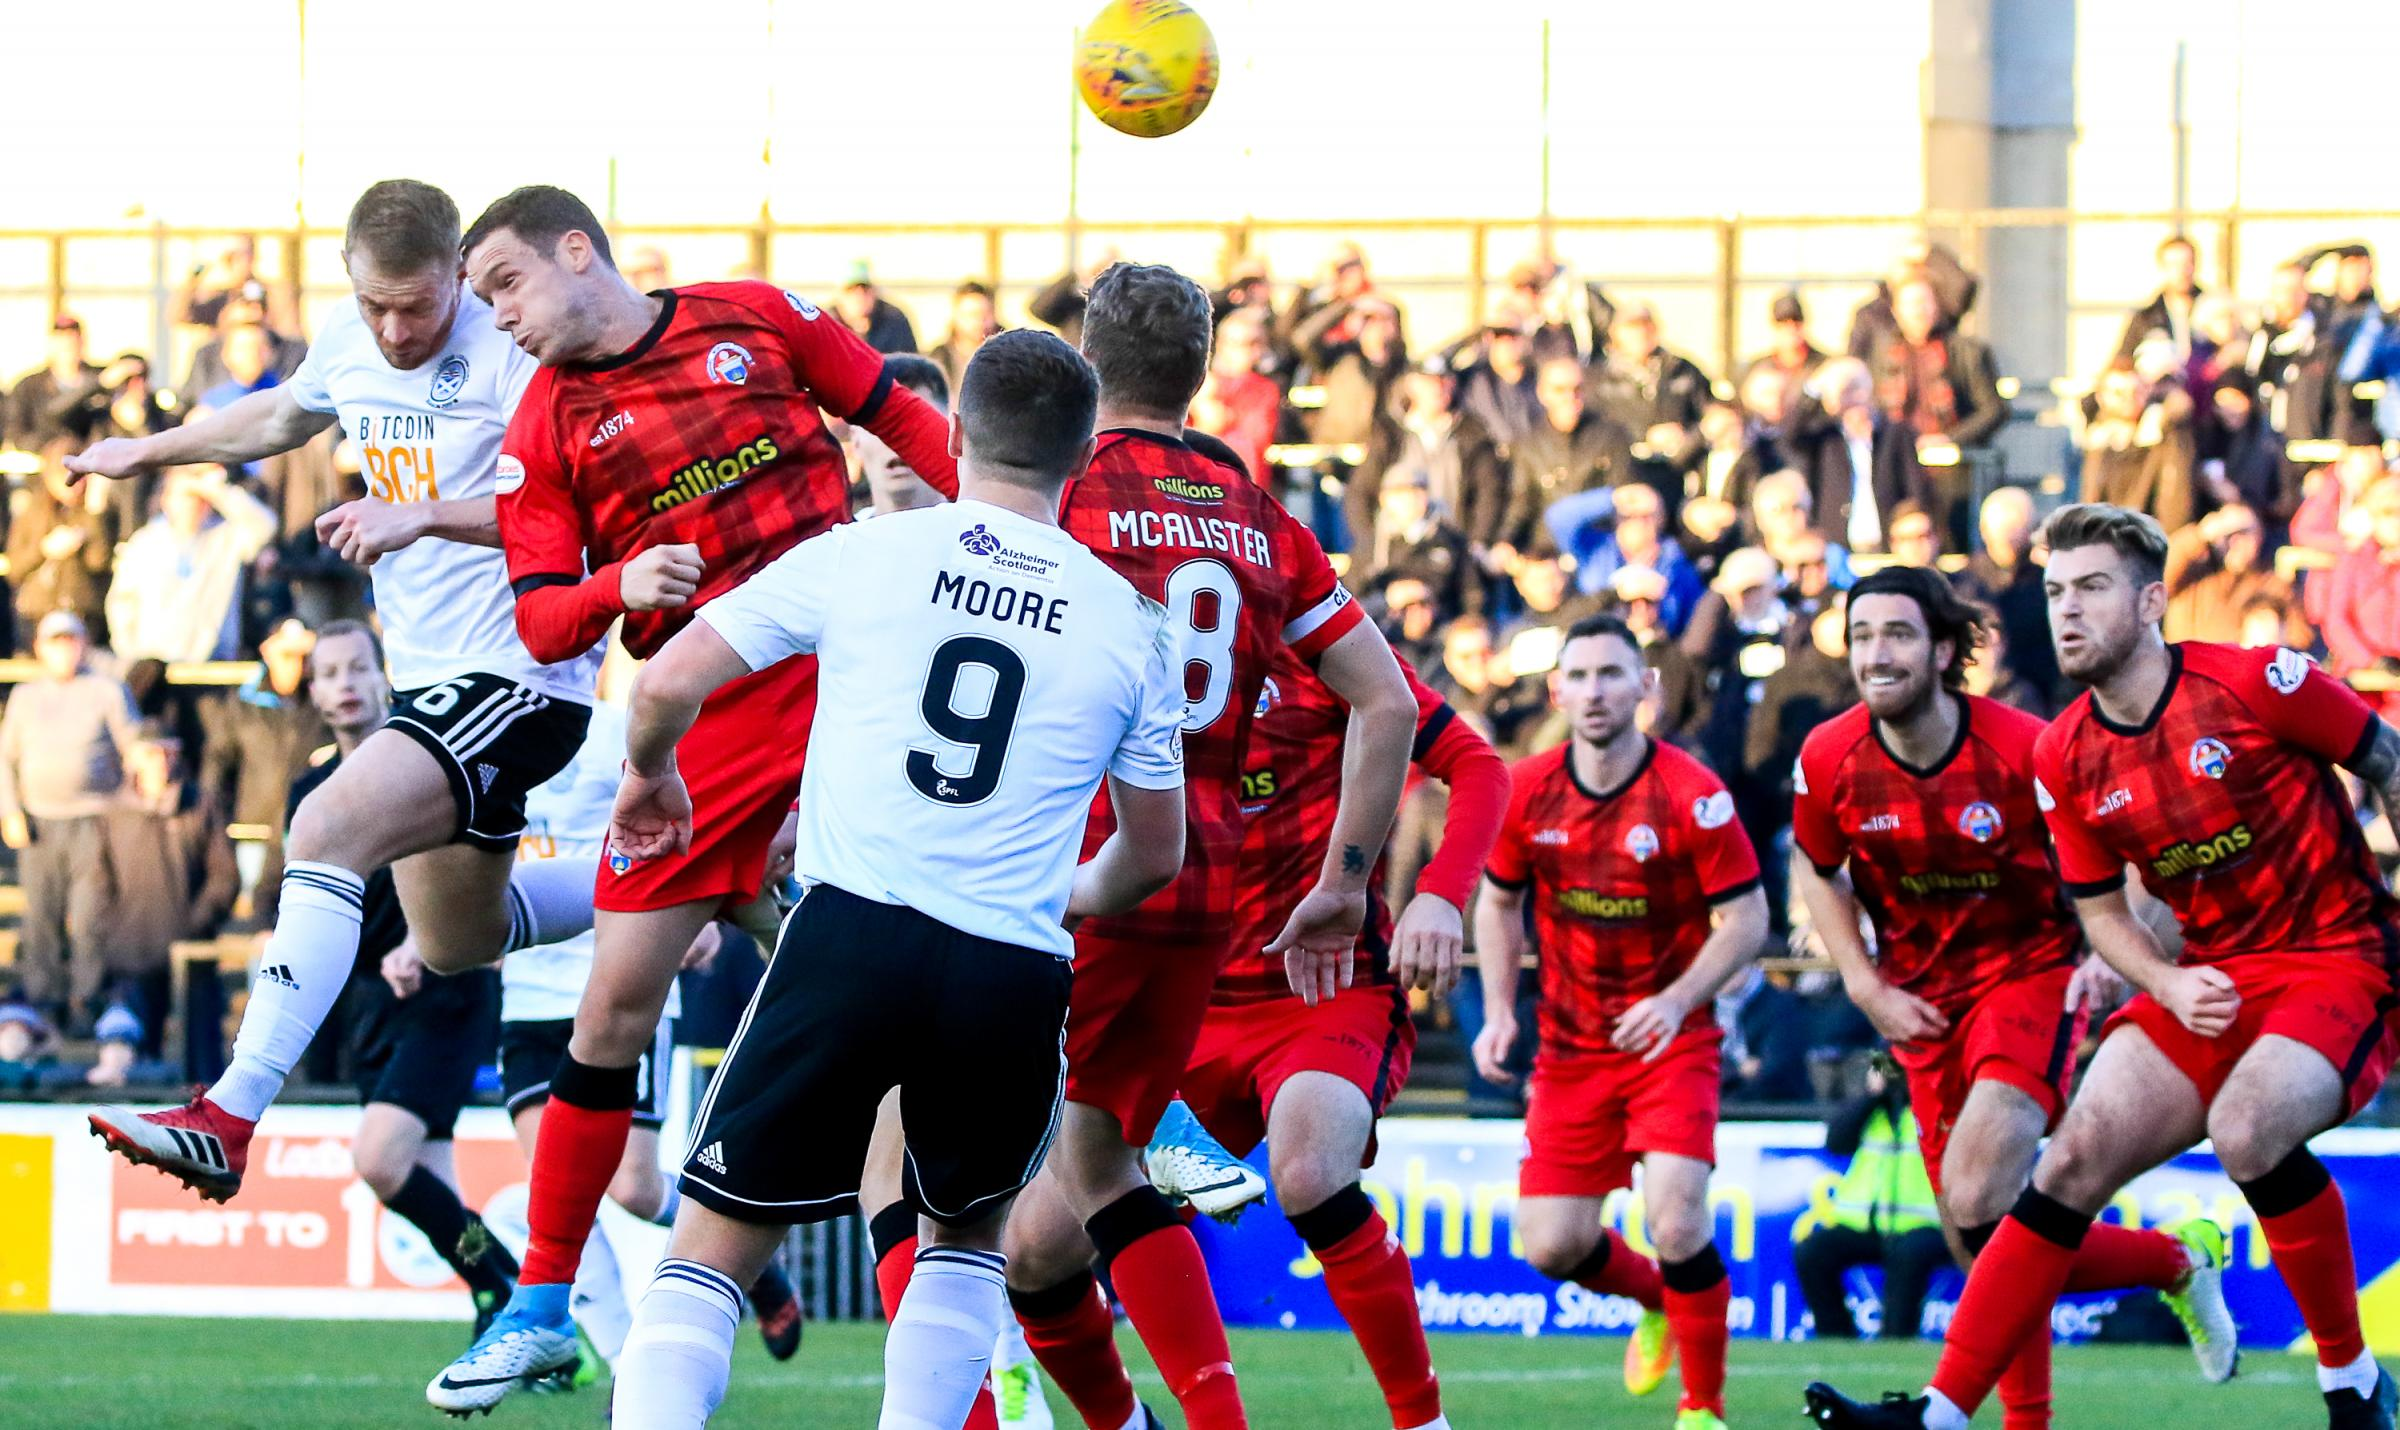 Johansson draws inspiration from Morton's draw against Ayr